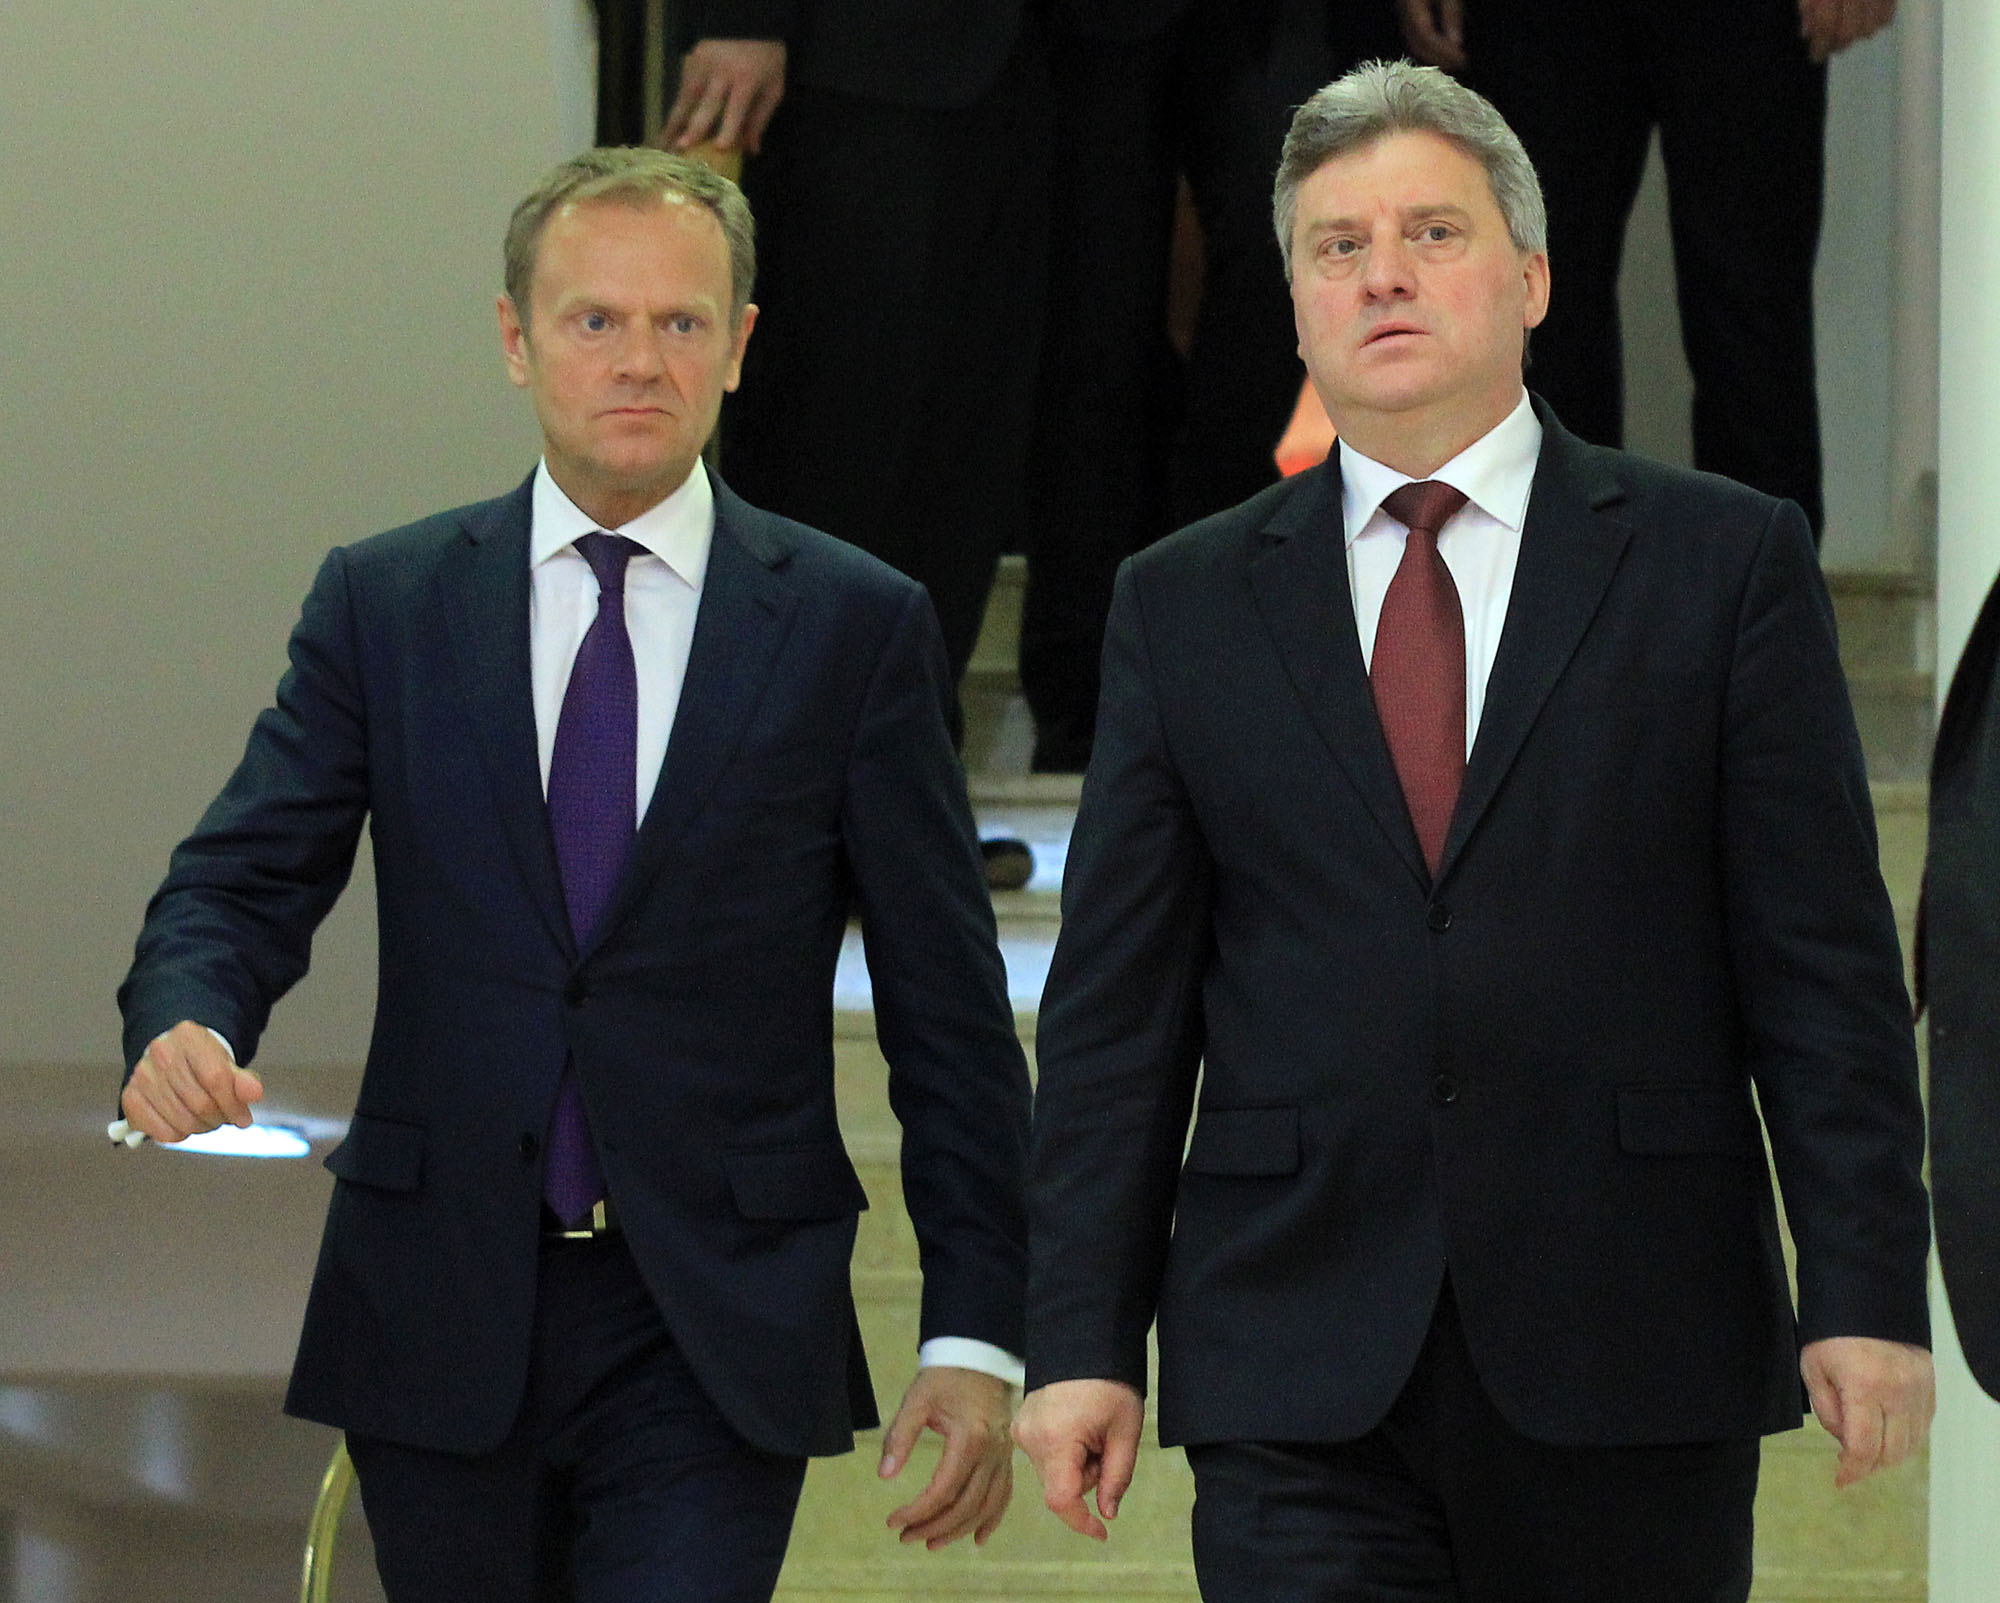 Tusk calls for formation of government